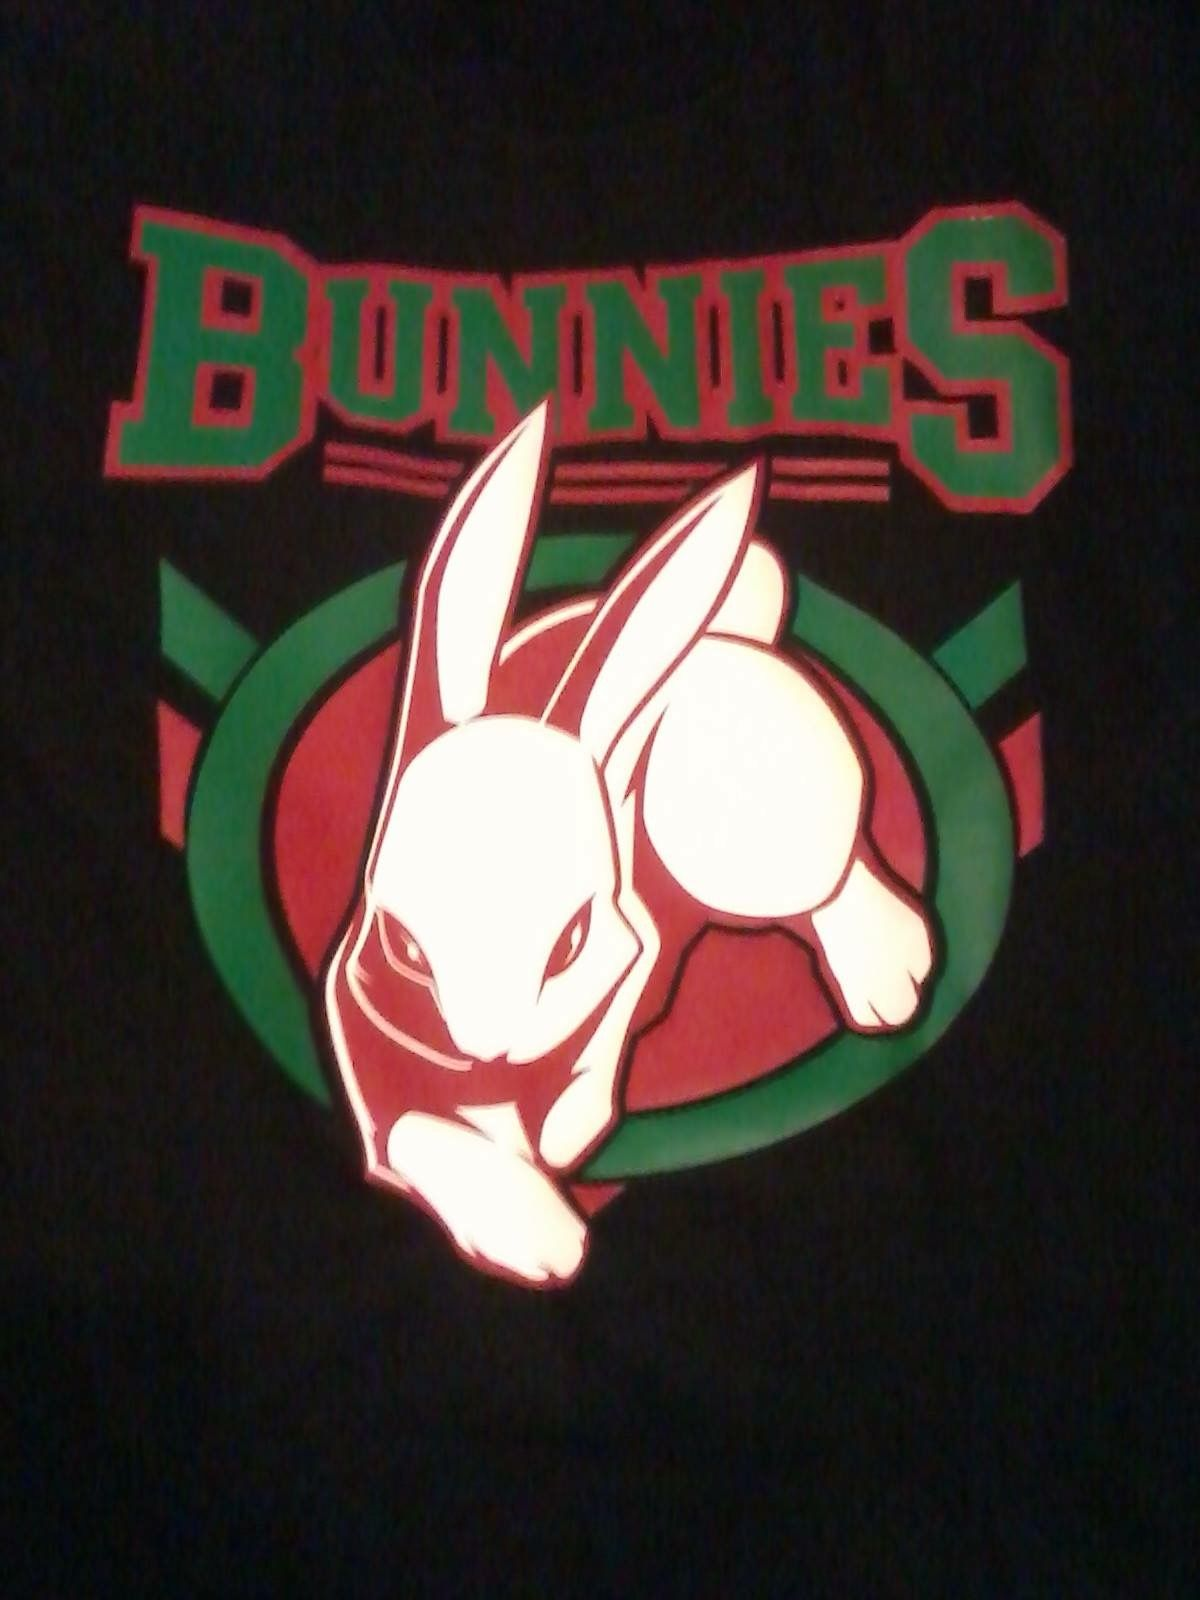 Pin By Jared Schnabl On South Sydney Rabbitohs Rabbits In Australia Rugby League Nrl